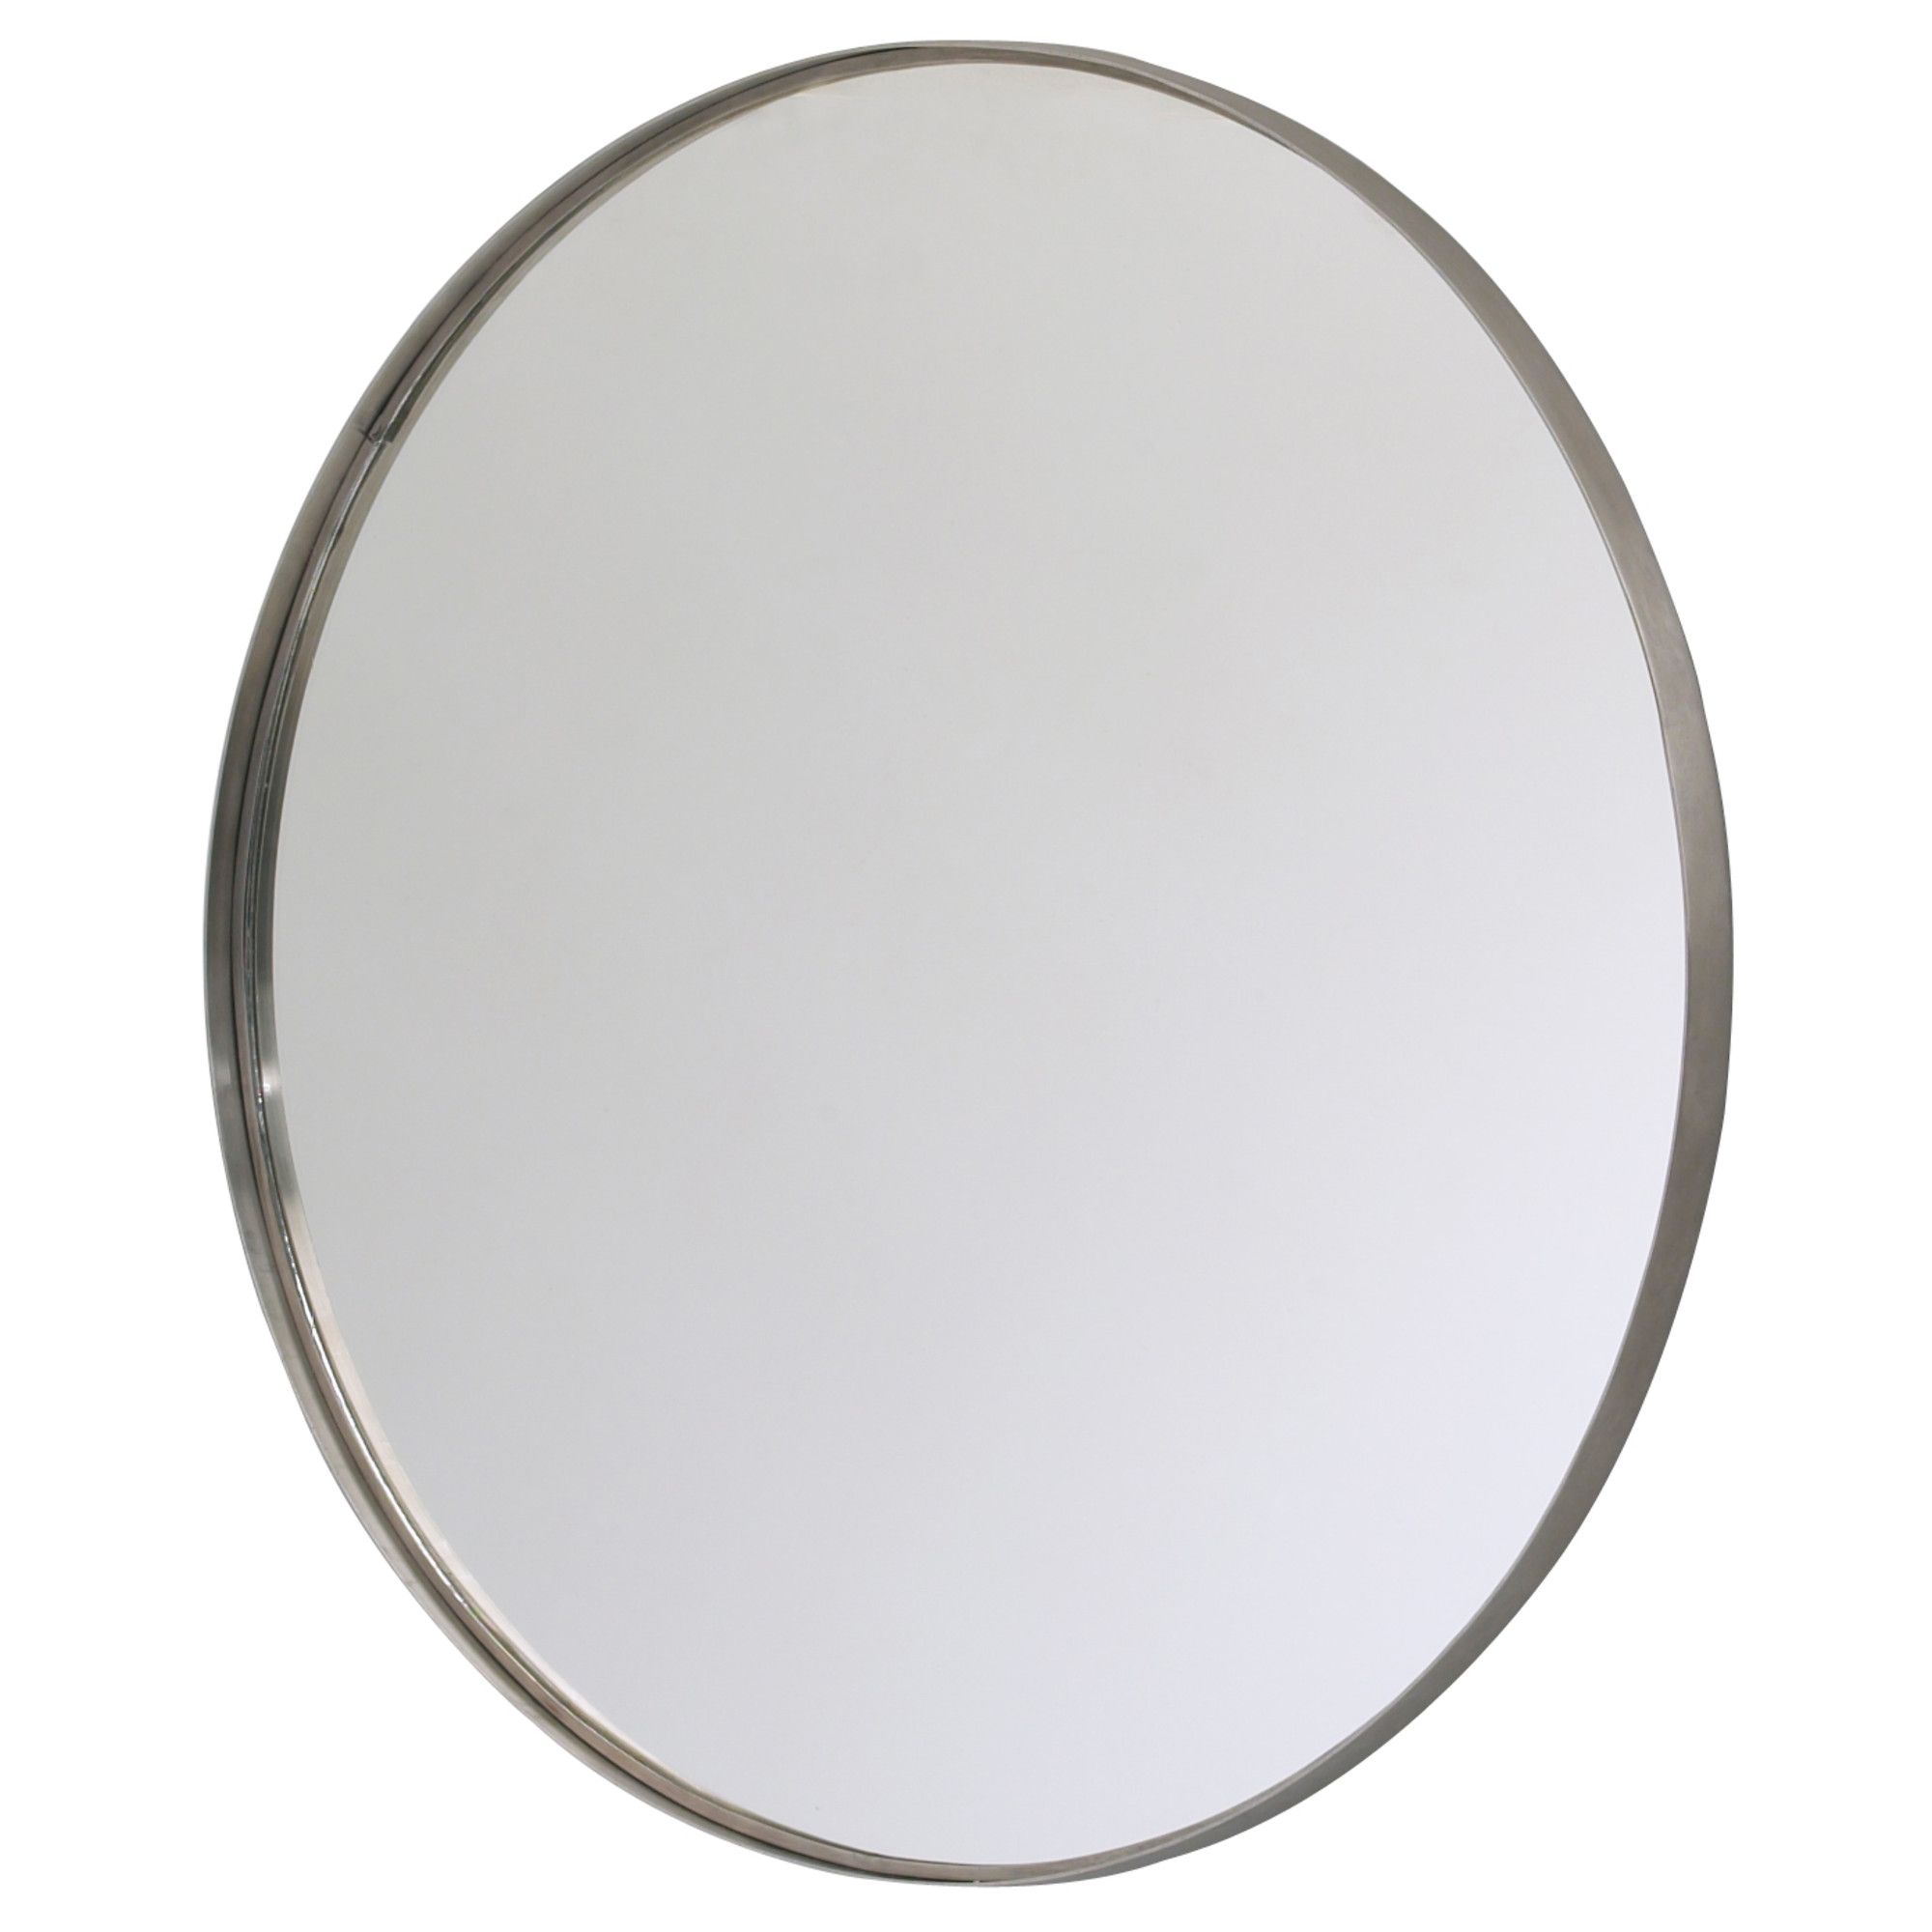 Grundtal mirror ikea will make a restoration hardware captains mirror from this - Spiegel industrial metal ...